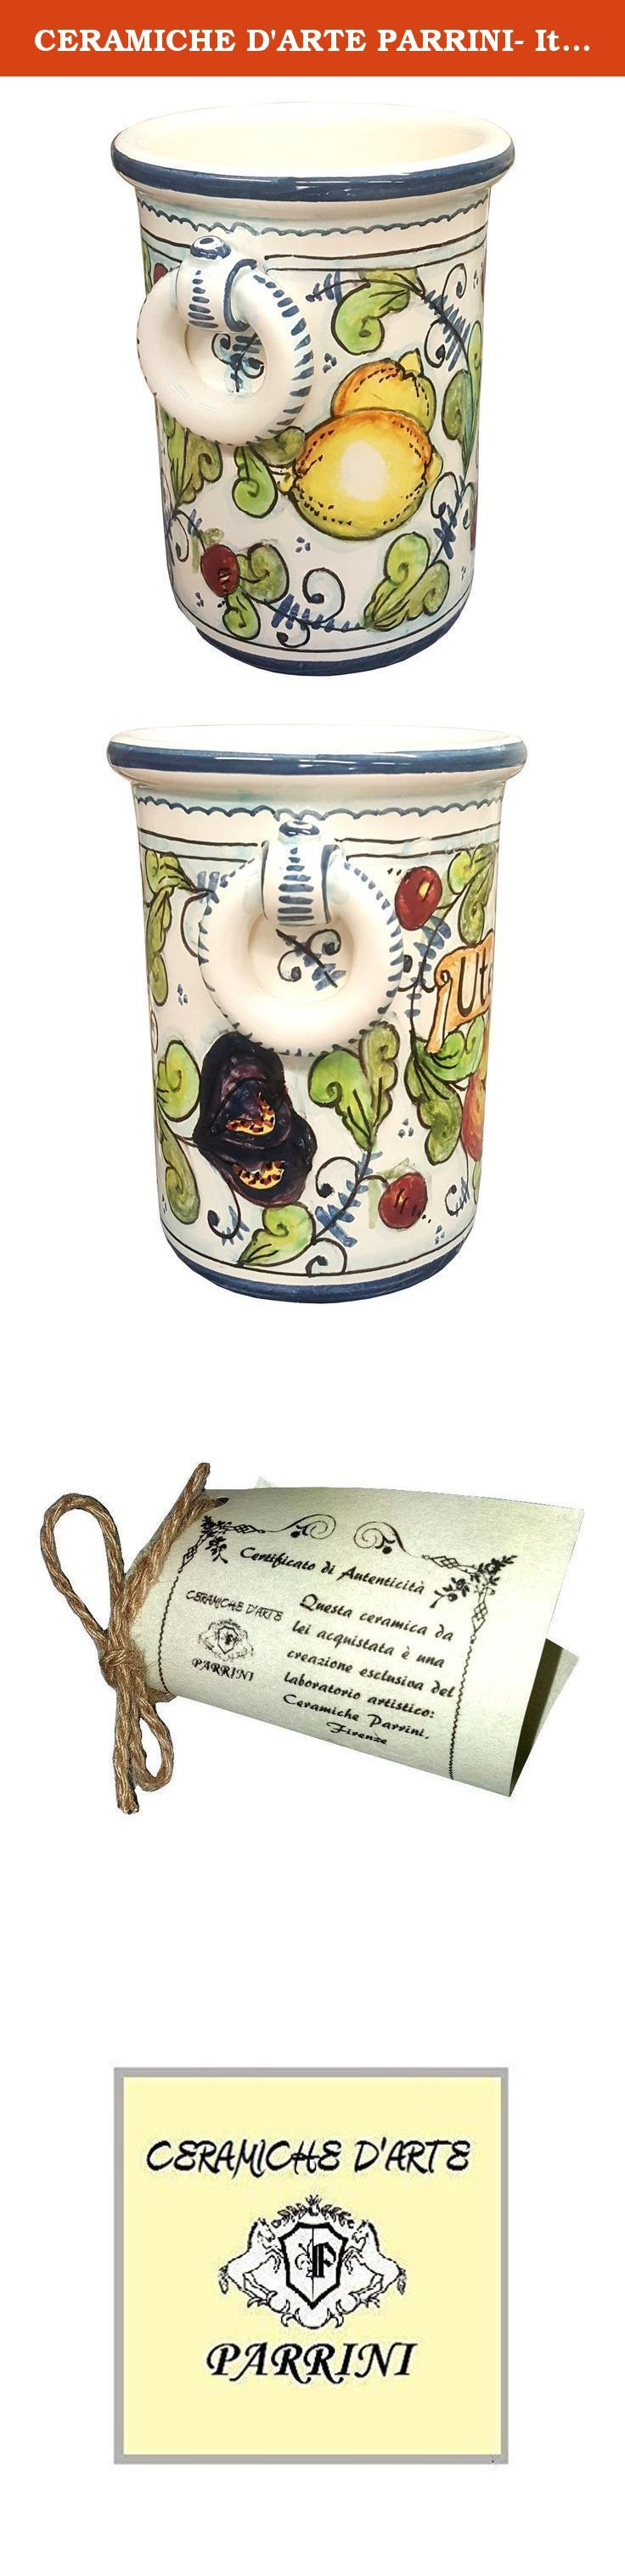 CERAMICHE D'ARTE PARRINI- Italian Ceramic Utensil Holder Vessel Hand Painted Made in ITALY Tuscan Art Pottery. Ceramic Utensil Vessel for any use . Decorations : Branches of lemon,figs,pomegranates on a white ivory frame with blue curls of old. Net weight Kg.0,700, Dimensions: 6.69 h inch x5.51 inch-- By purchasing directly from the manufacturer of Tuscan craft, you can ask if you want, any other customization, or you can buy now so as you see in the picture and you will be sent the day...